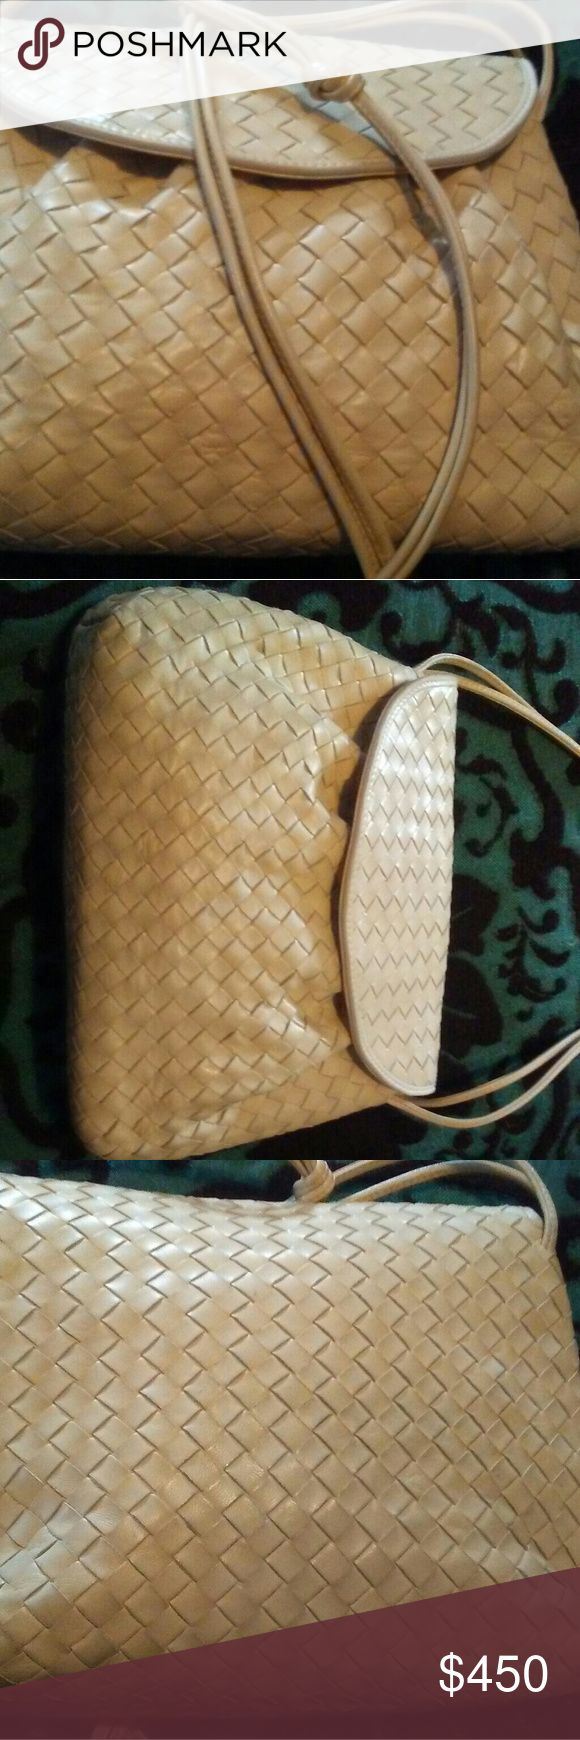 Bottega Veneta Intrecciato leather beige bag Cream designer bag, rarely used, medium sized purse. Soft cream leather outside, and tan suede inside, the neutral color ensures this bag will go great with a multitude of style options. Bottega Veneta Bags Shoulder Bags